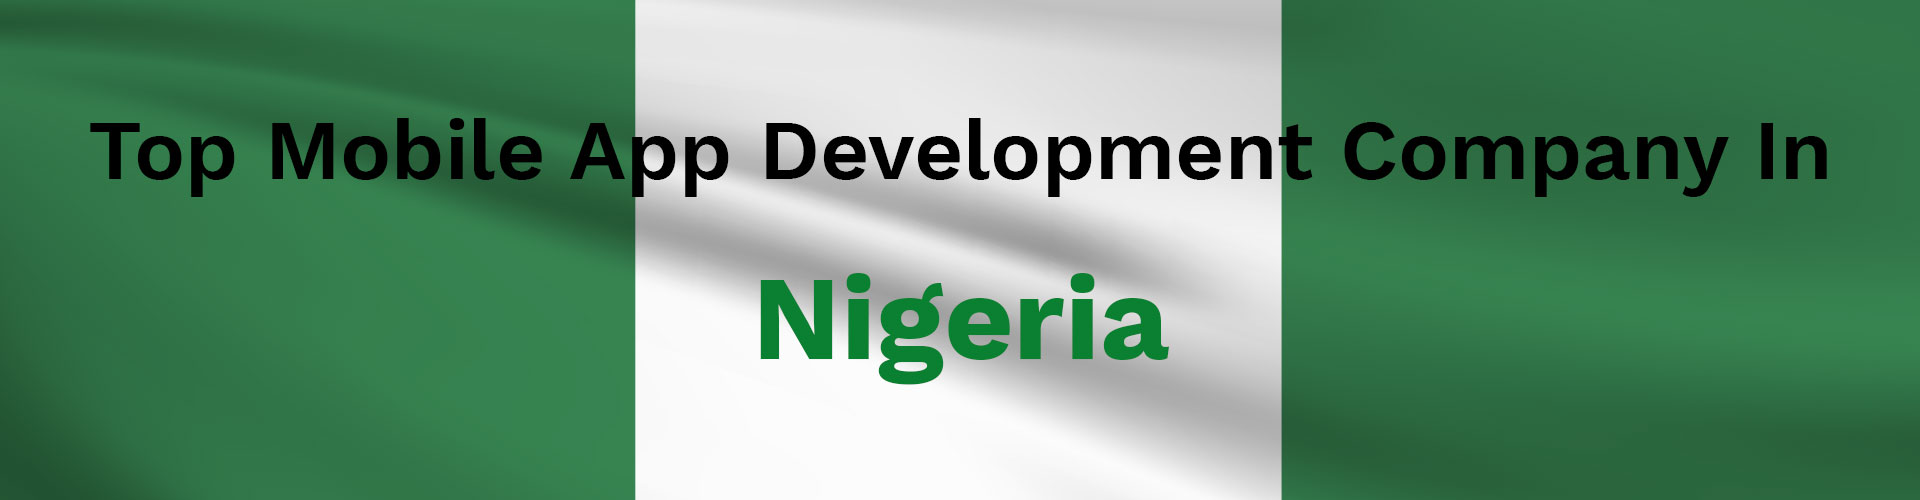 mobile app development company nigeria